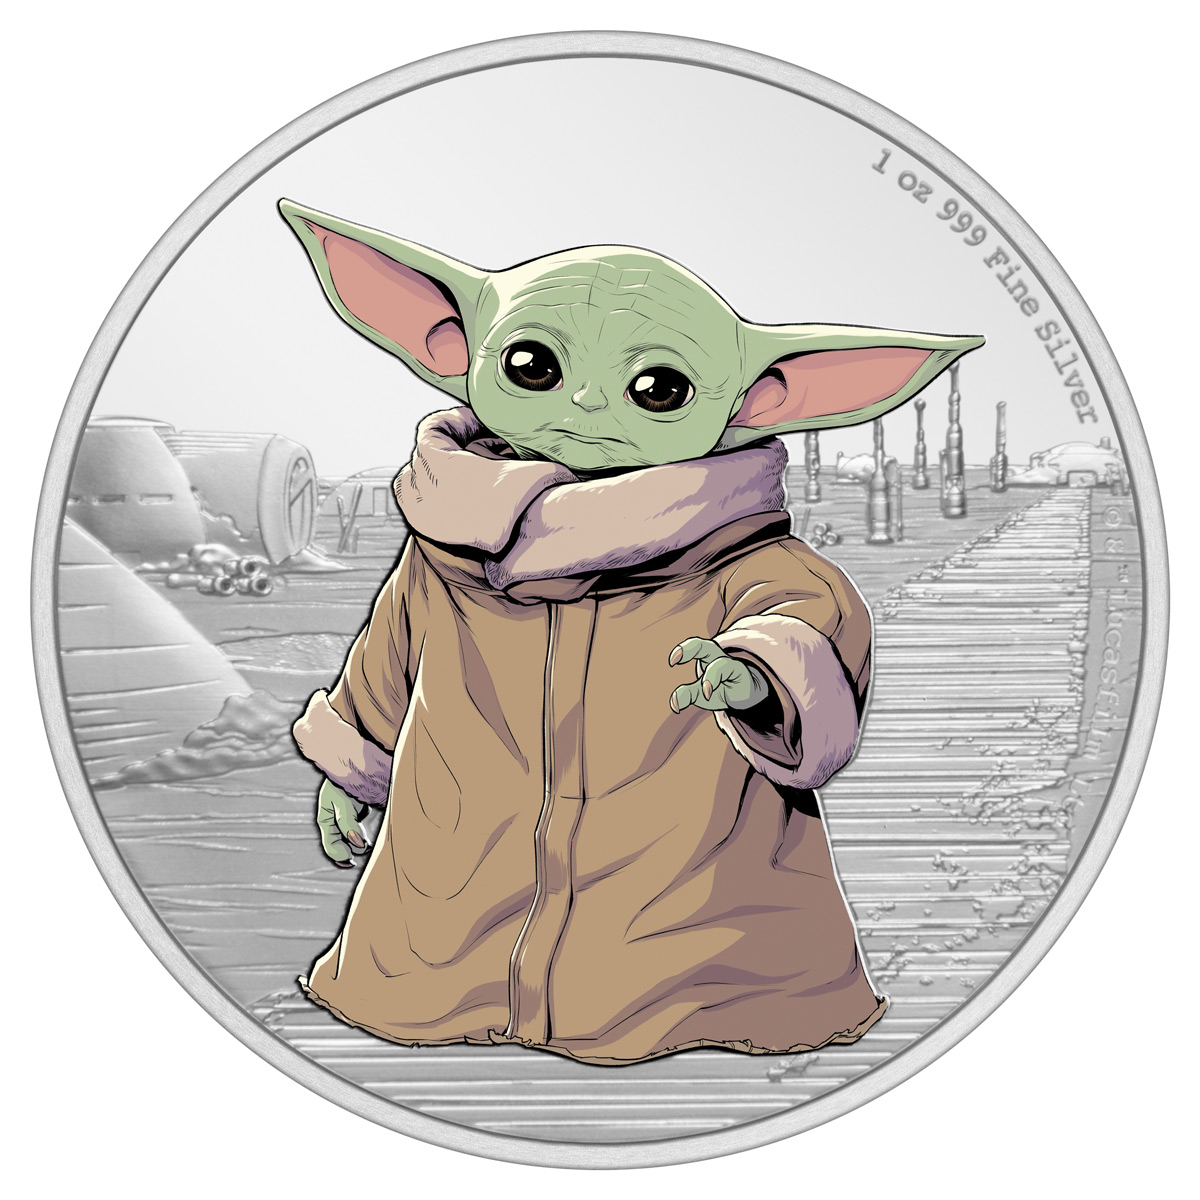 2021 Niue Star Wars - Mandalorian - The Child 1 oz Silver Colorized Proof $2 Coin GEM Proof OGP